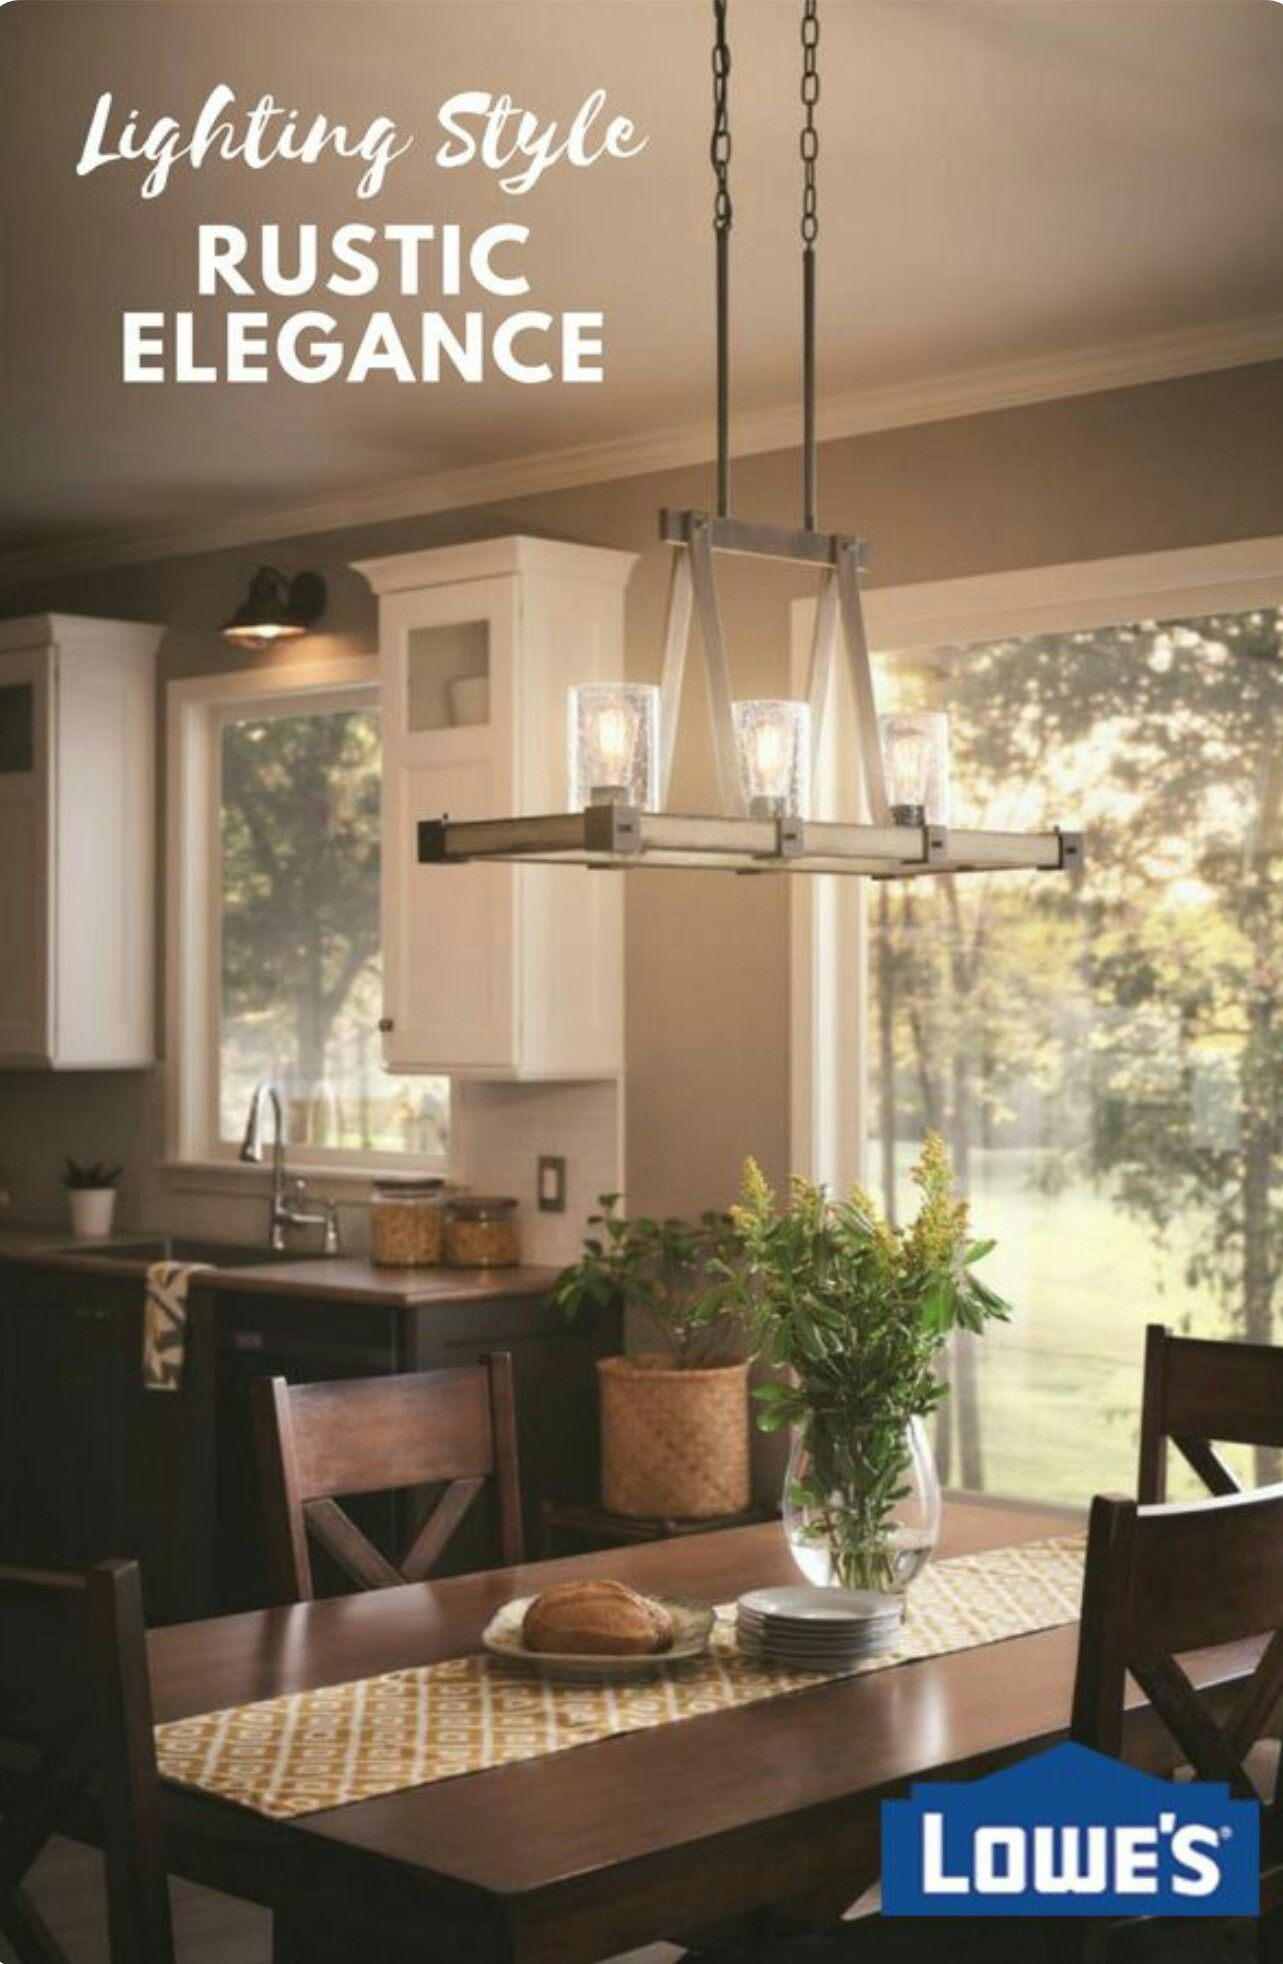 Home interior design dining room pin by suauruauh on home decor kitchendining  pinterest  kitchen